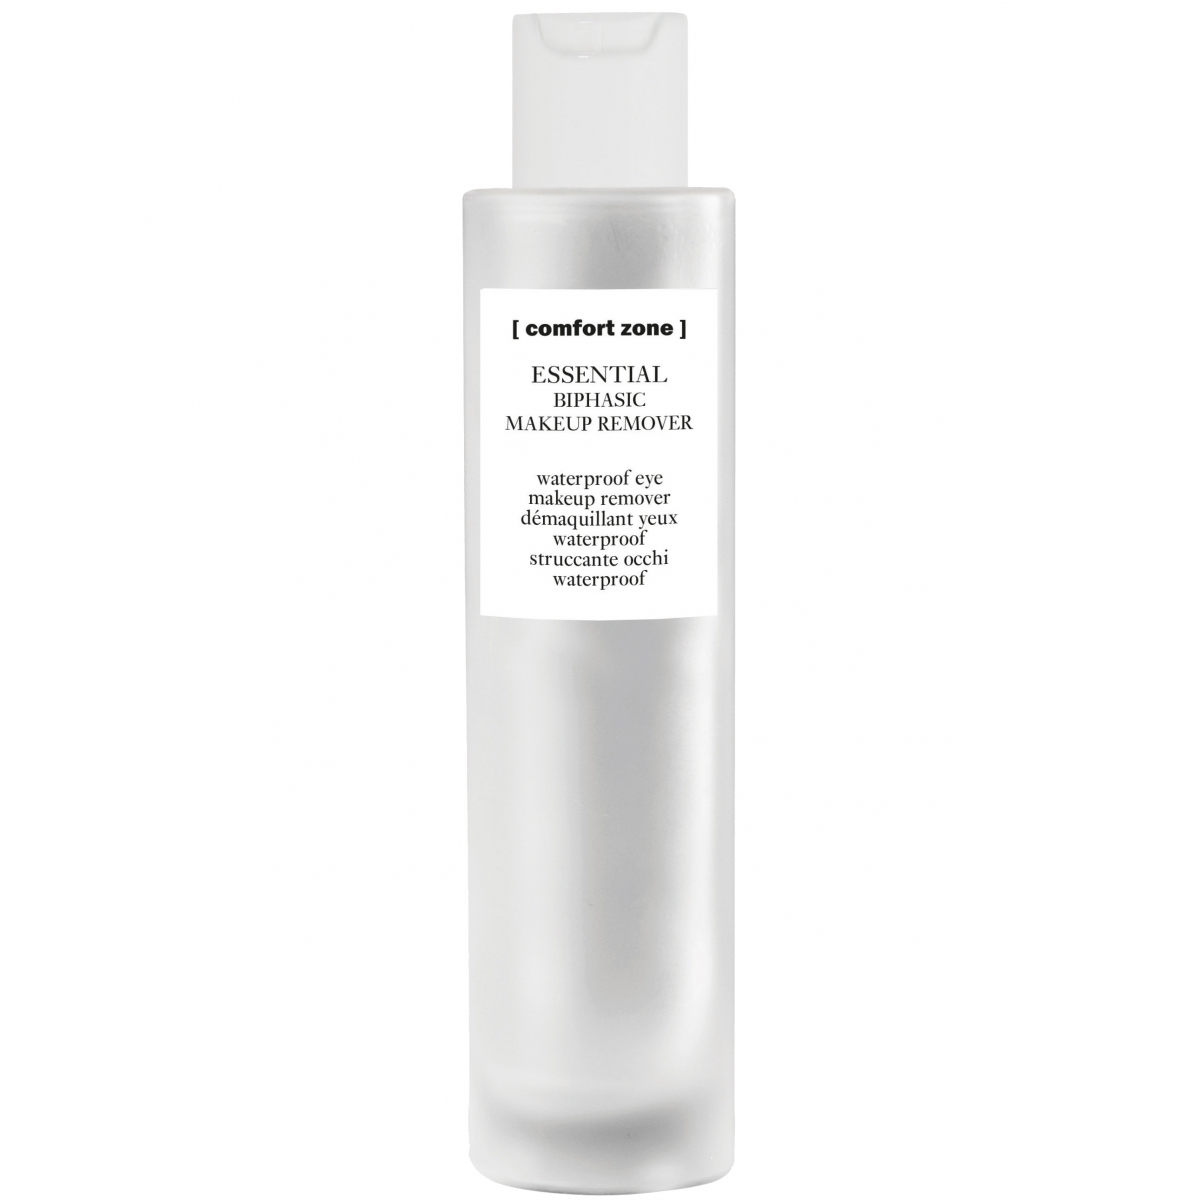 Essential Biphasic Eye Makeup Remover 150 ml